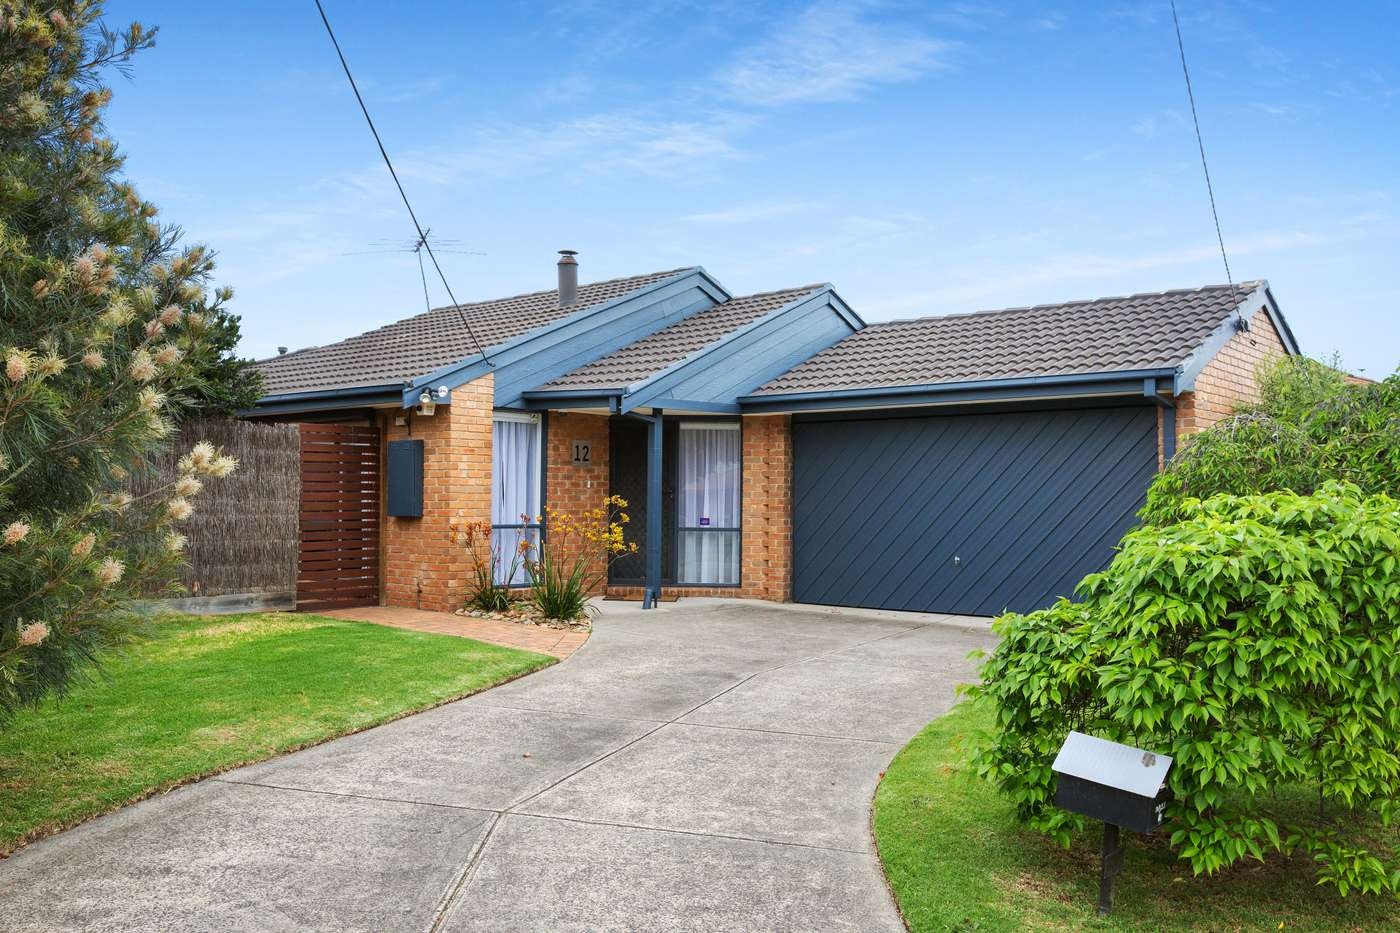 Main view of Homely house listing, 12 Sandfield Drive, Carrum Downs, VIC 3201